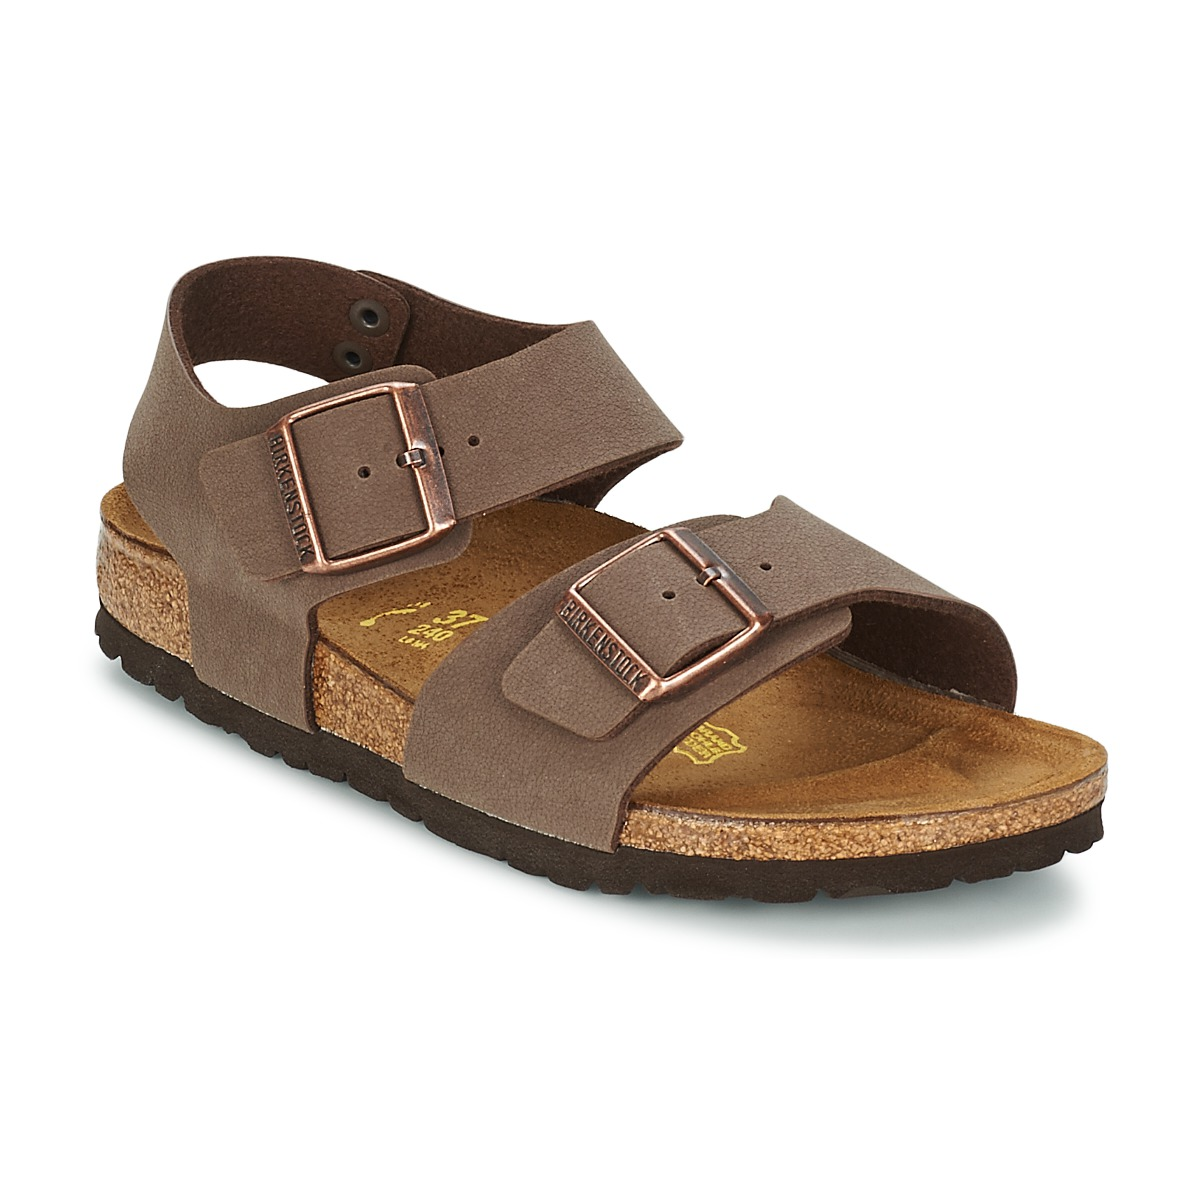 Birkenstock new york mocca free delivery with spartoo uk for Birkenstock new york